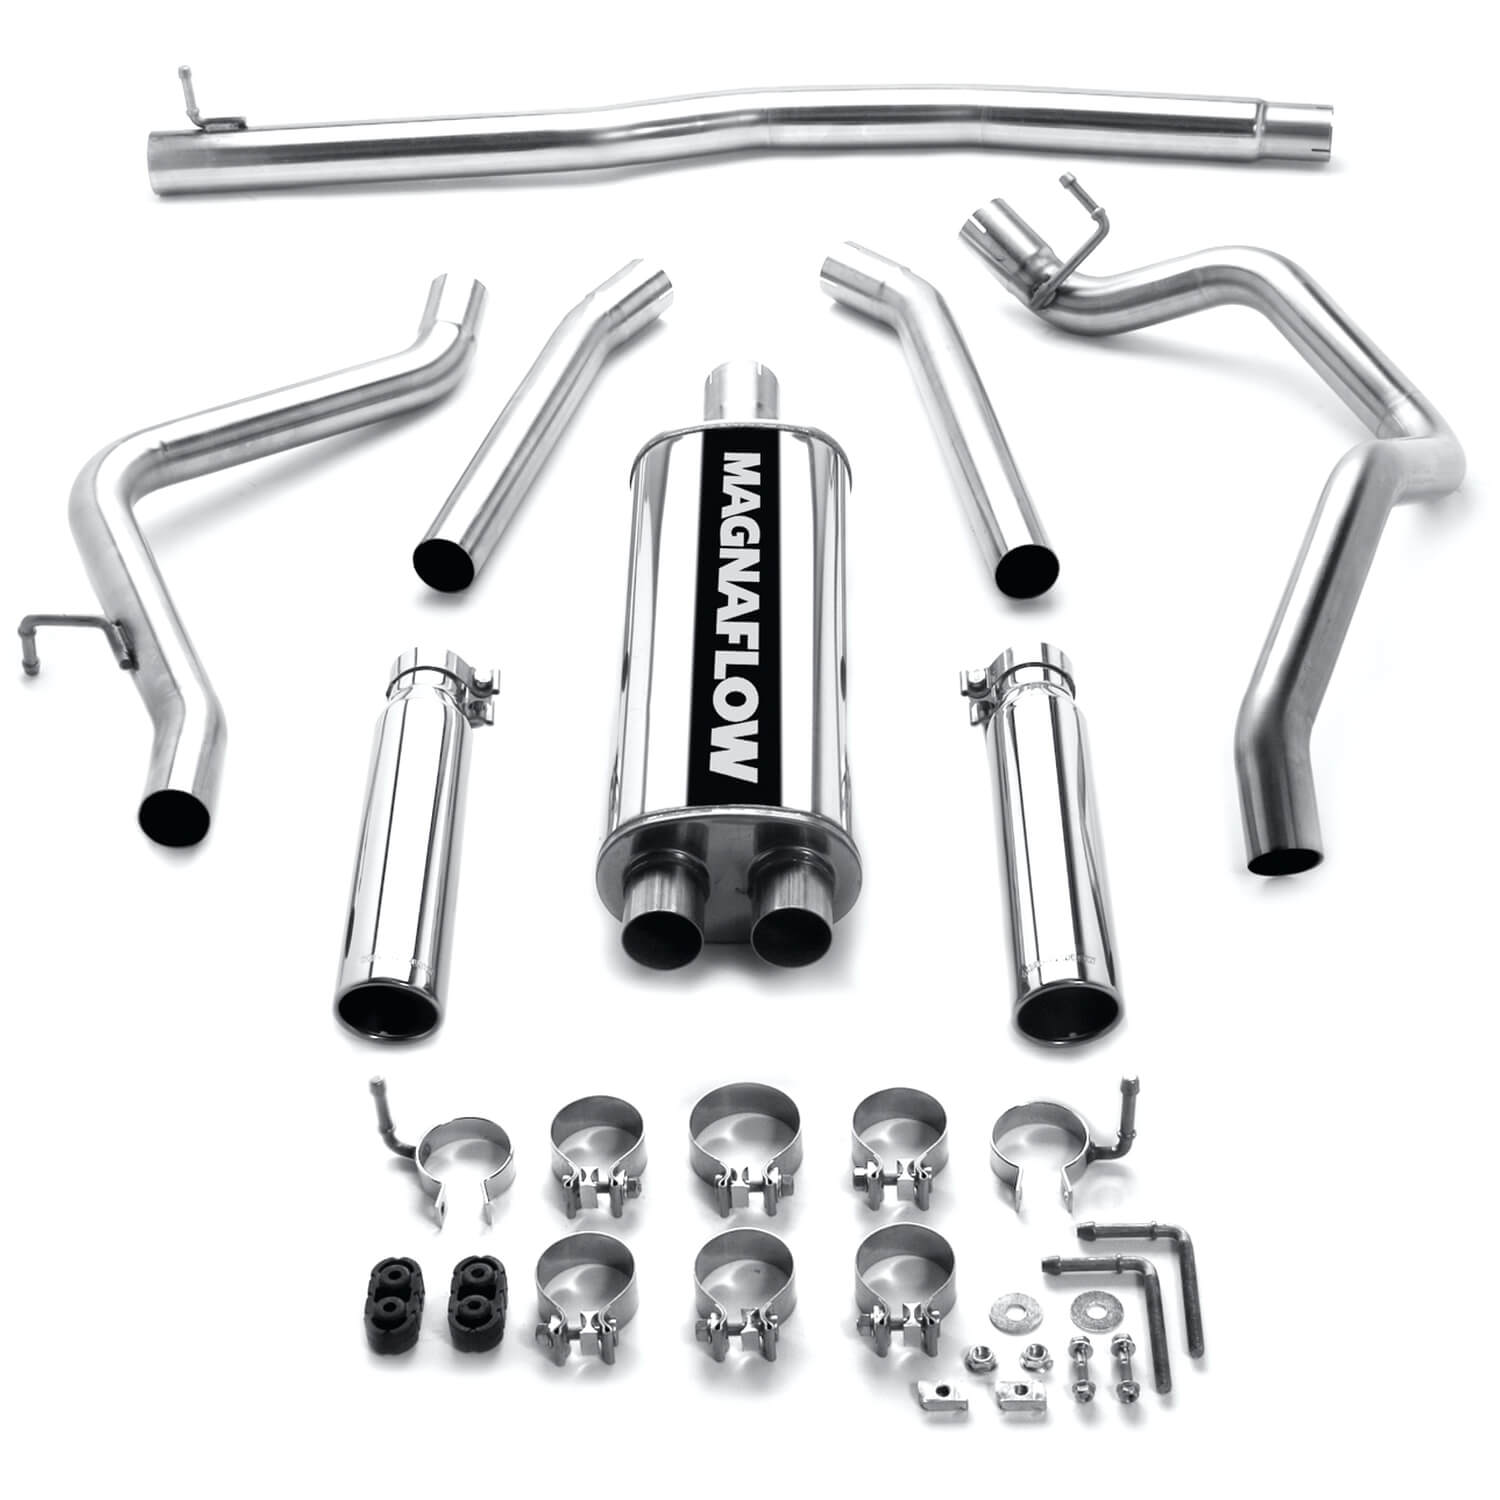 Magnaflow Mf Series Cat Back Exhaust System 08